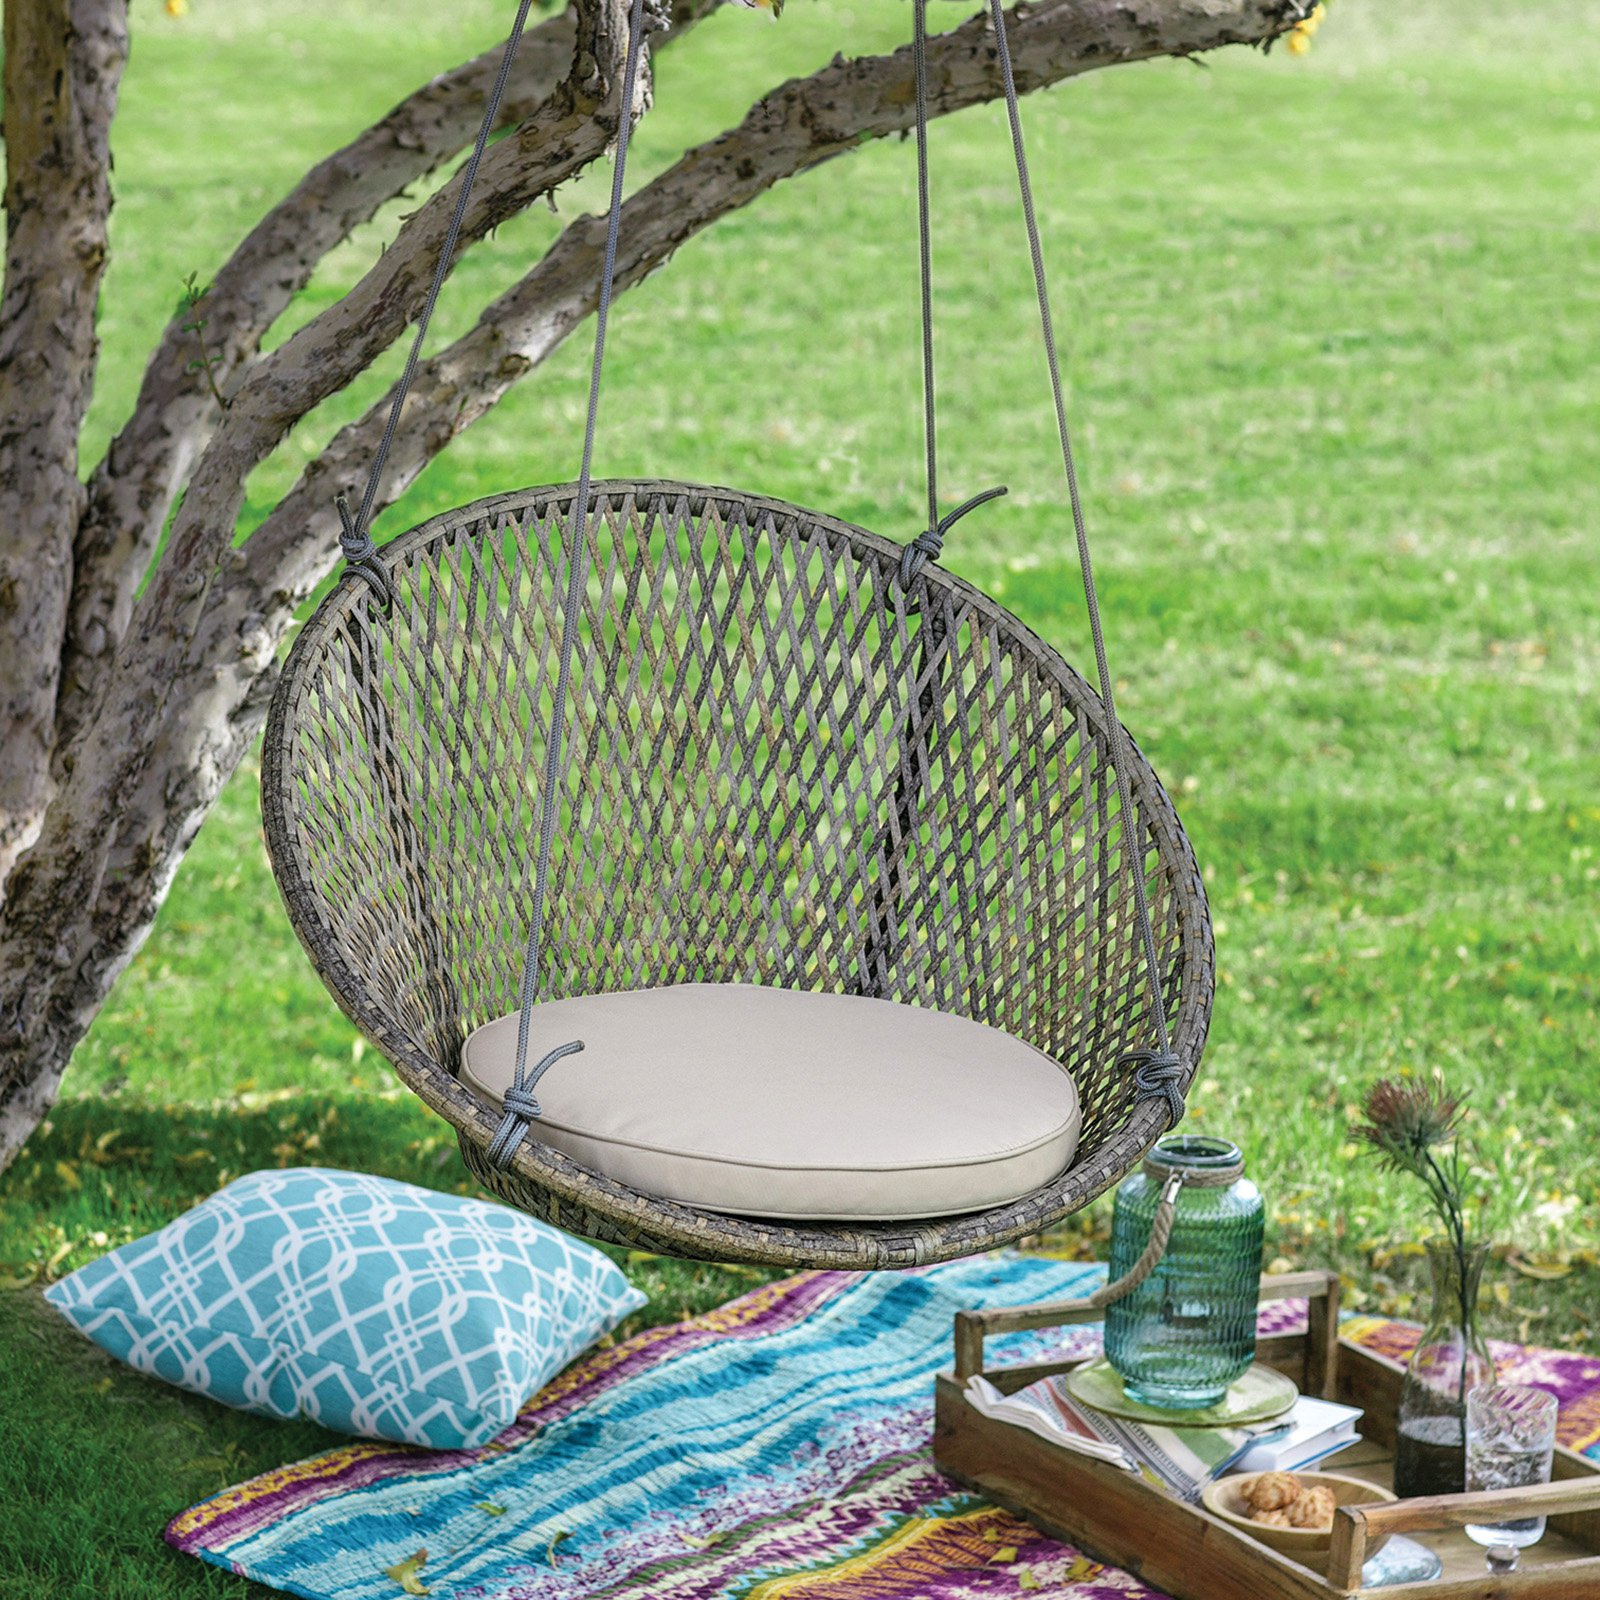 Belham Living Saria Resin Wicker Single Hanging Swing Chair with Seat Pad